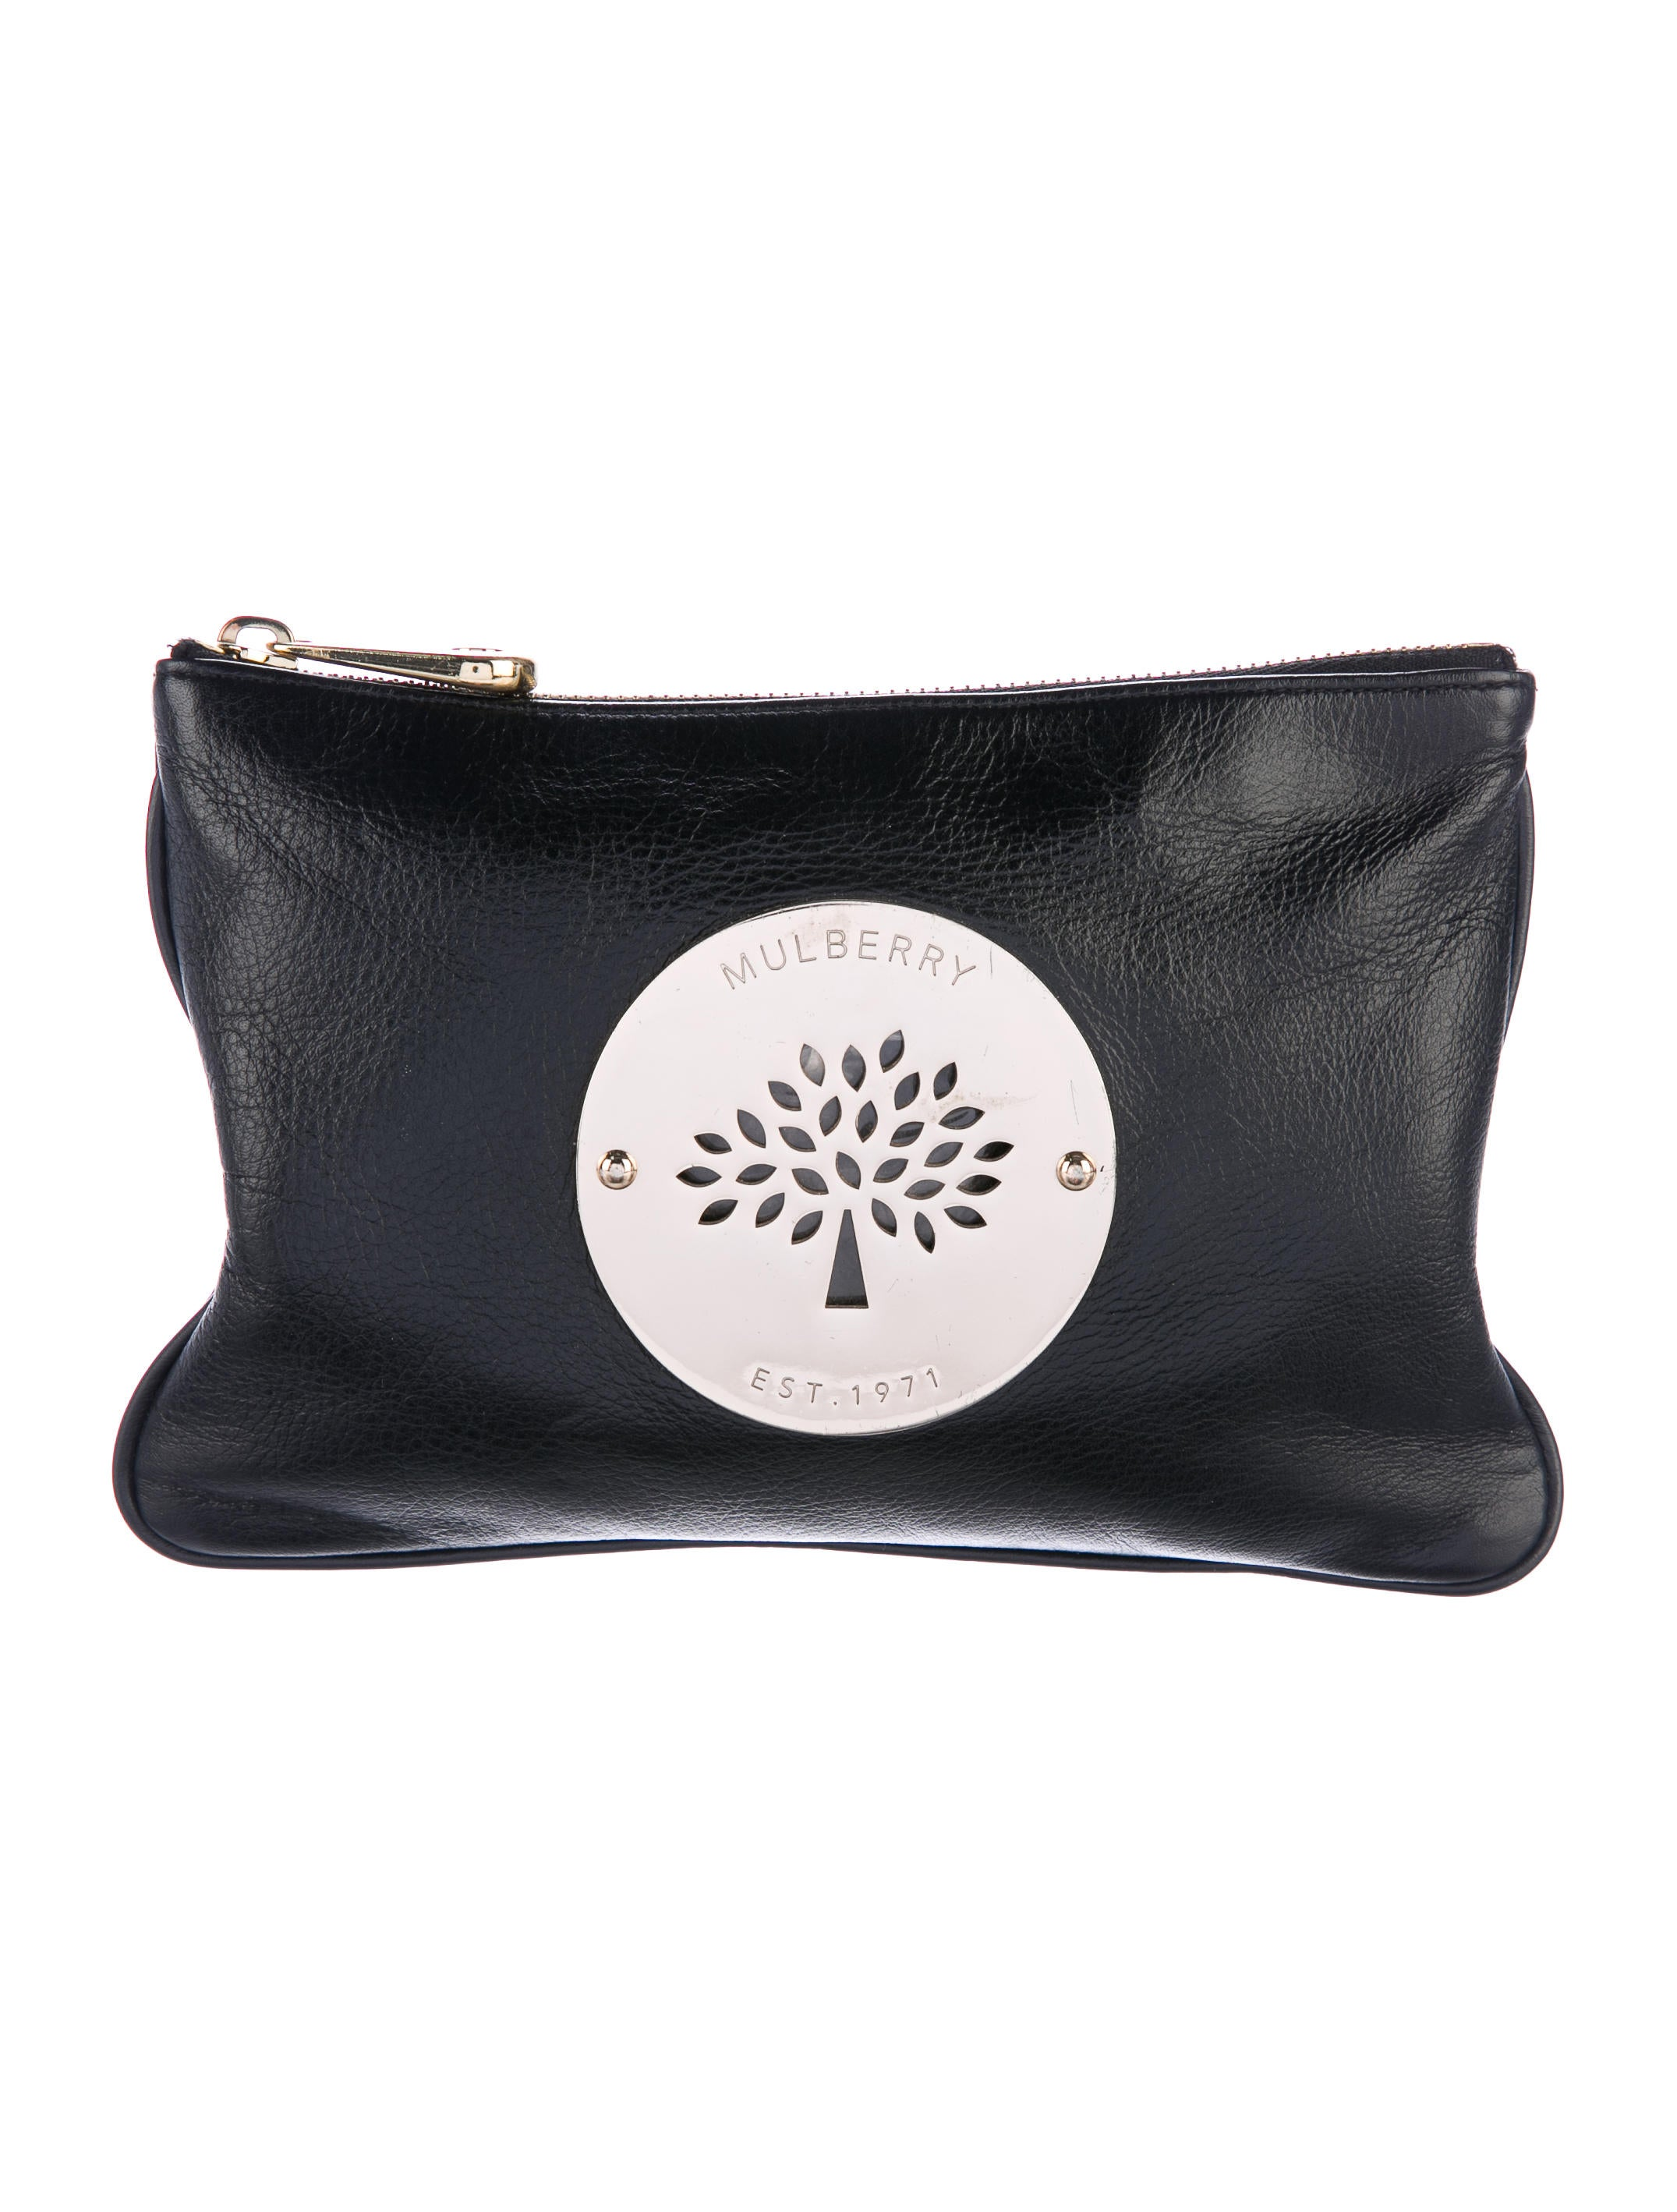 Mulberry Leather Daria Pouch - Handbags - MUL22696  1a0a0cb011e4b